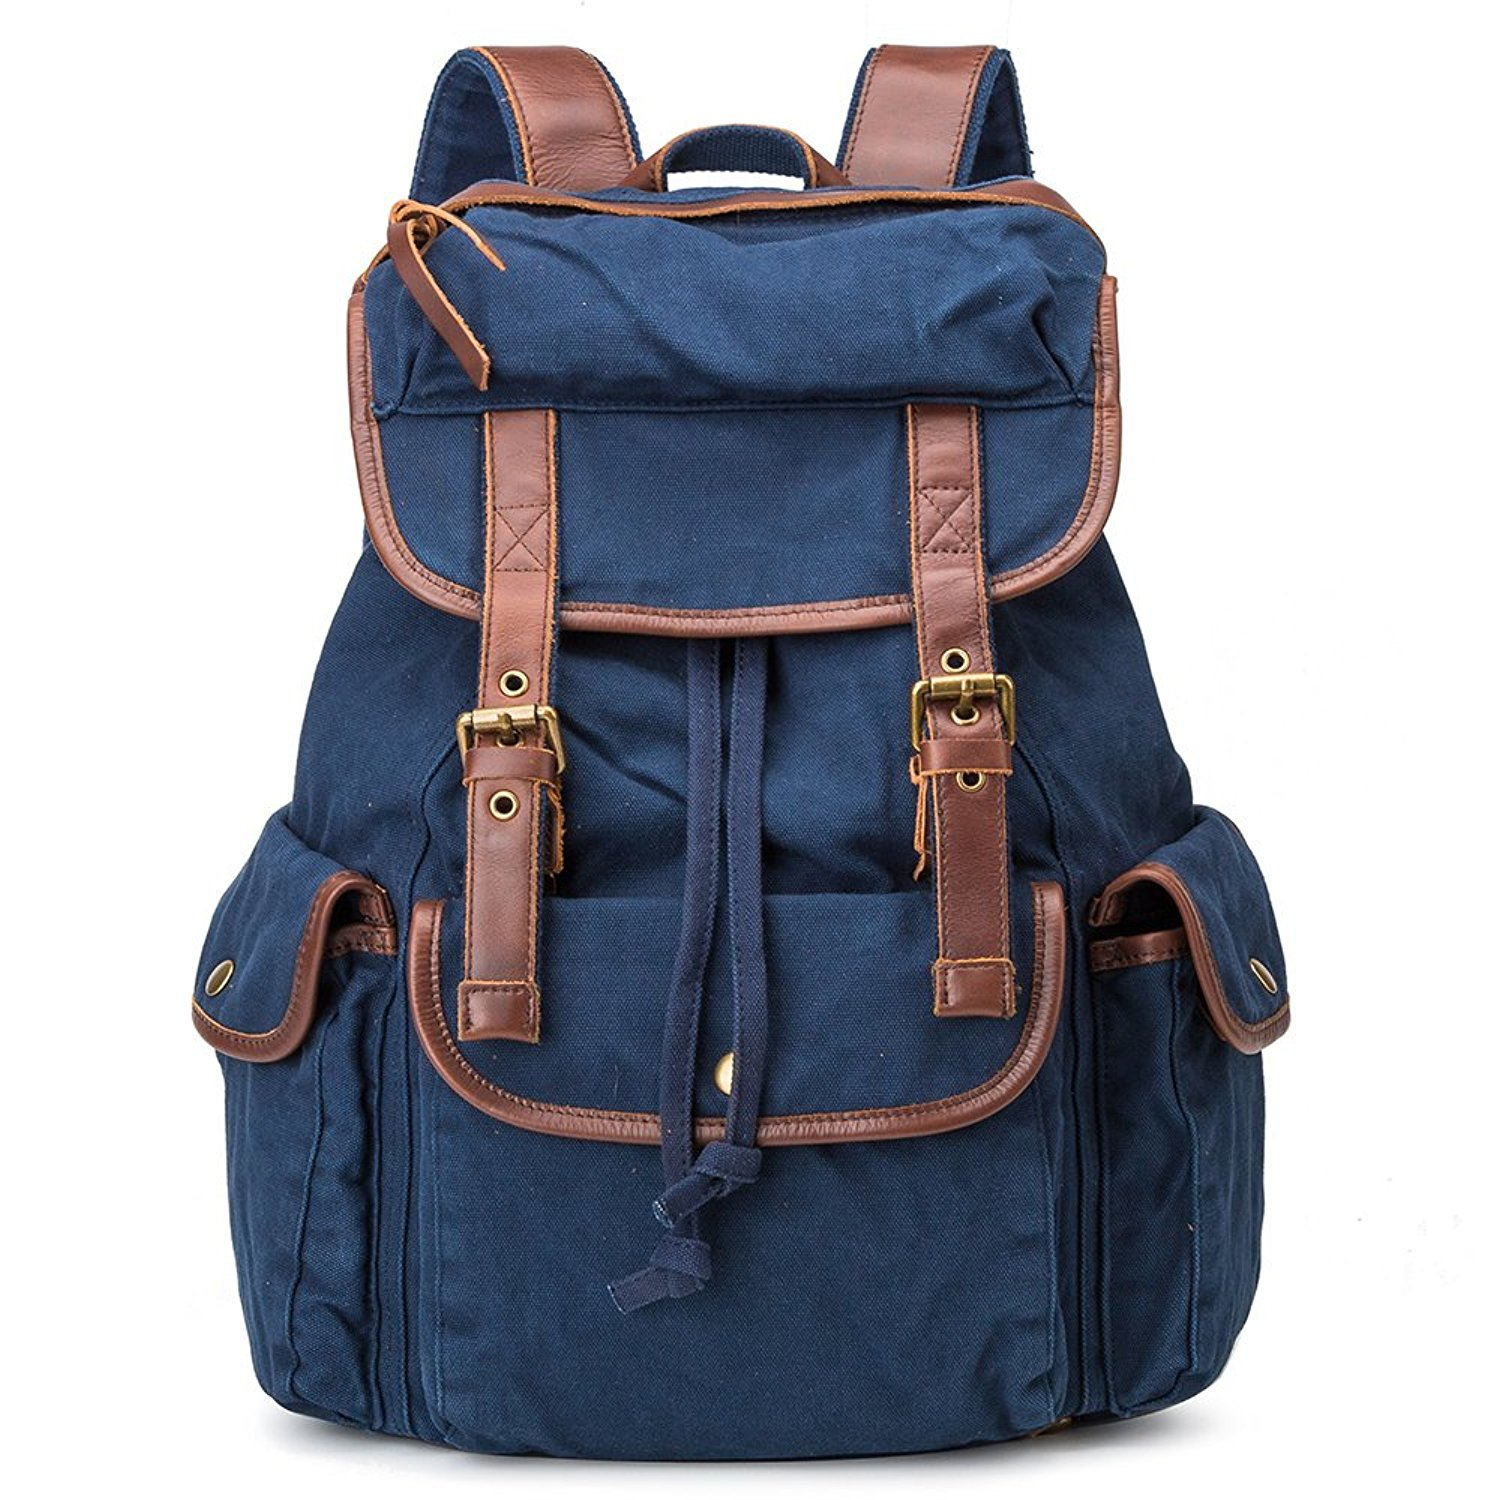 2218e73b0c BUG Genuine Leather Trim School Canvas Backpack Travel Bags (Blue Navy)